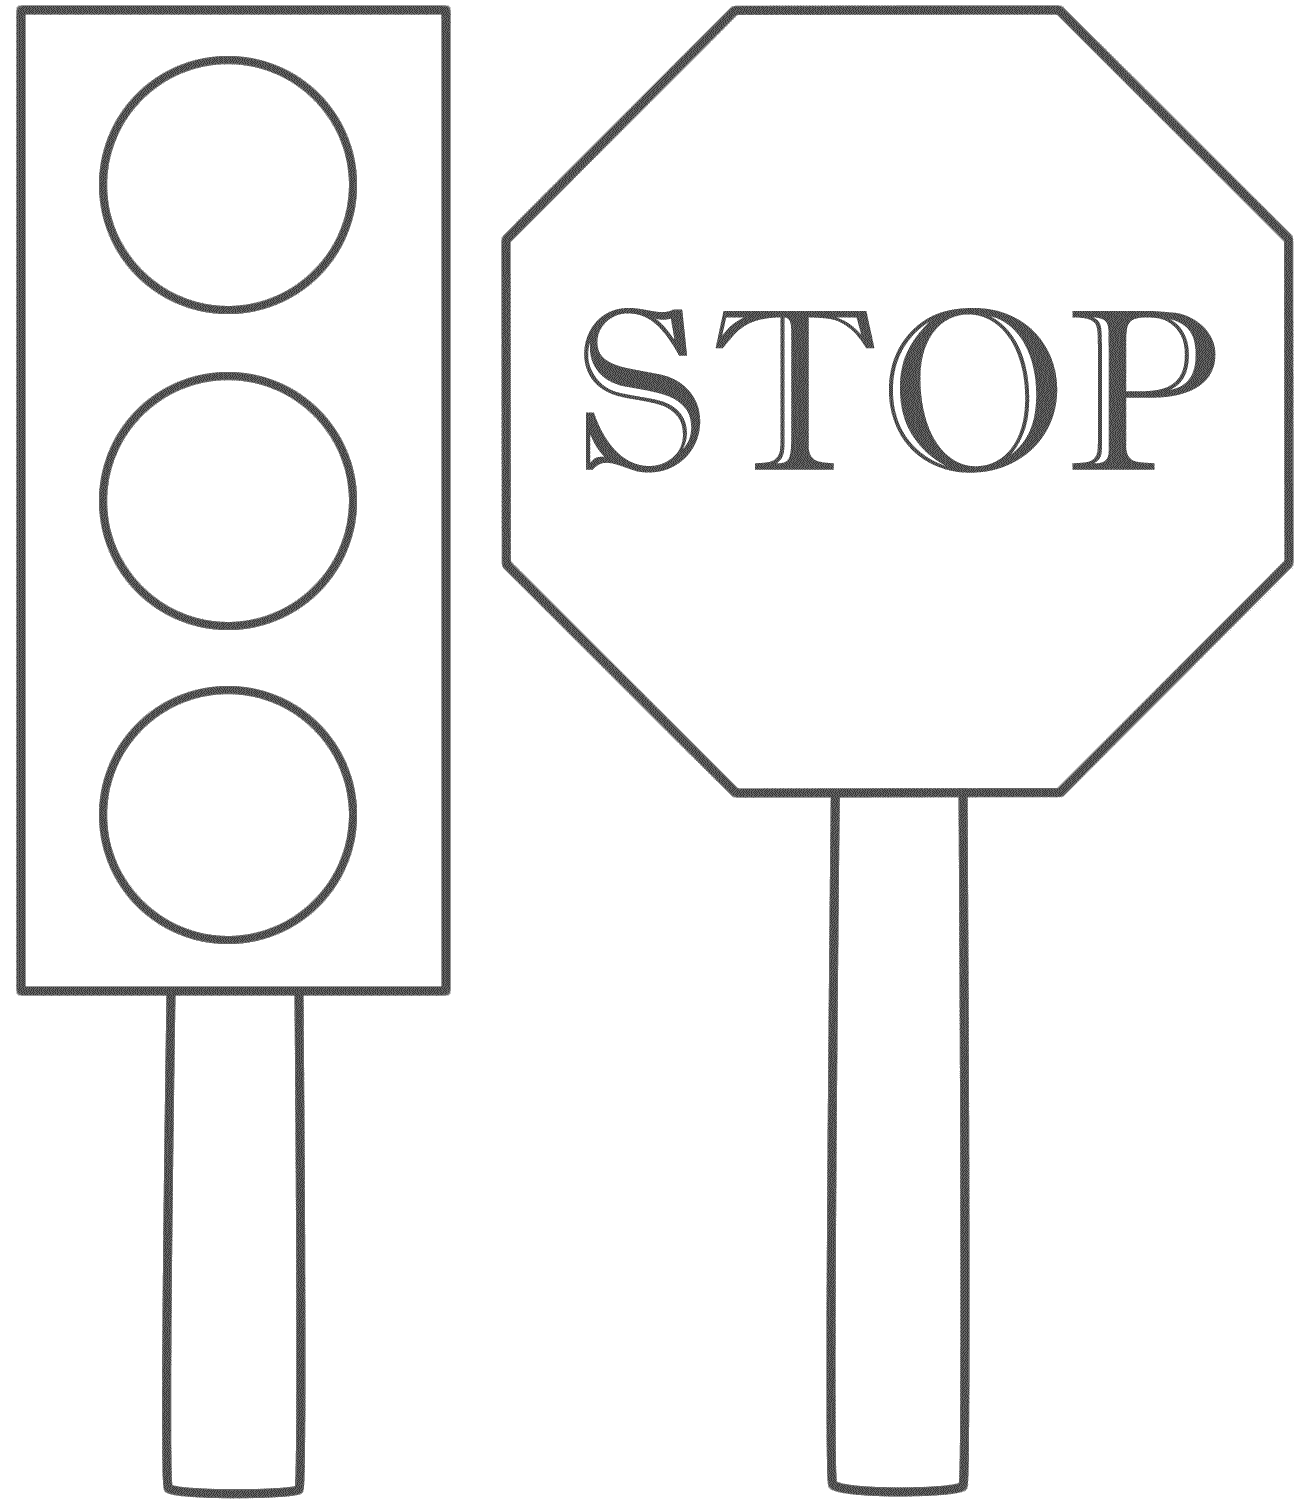 stop sign coloring pages - photo#29